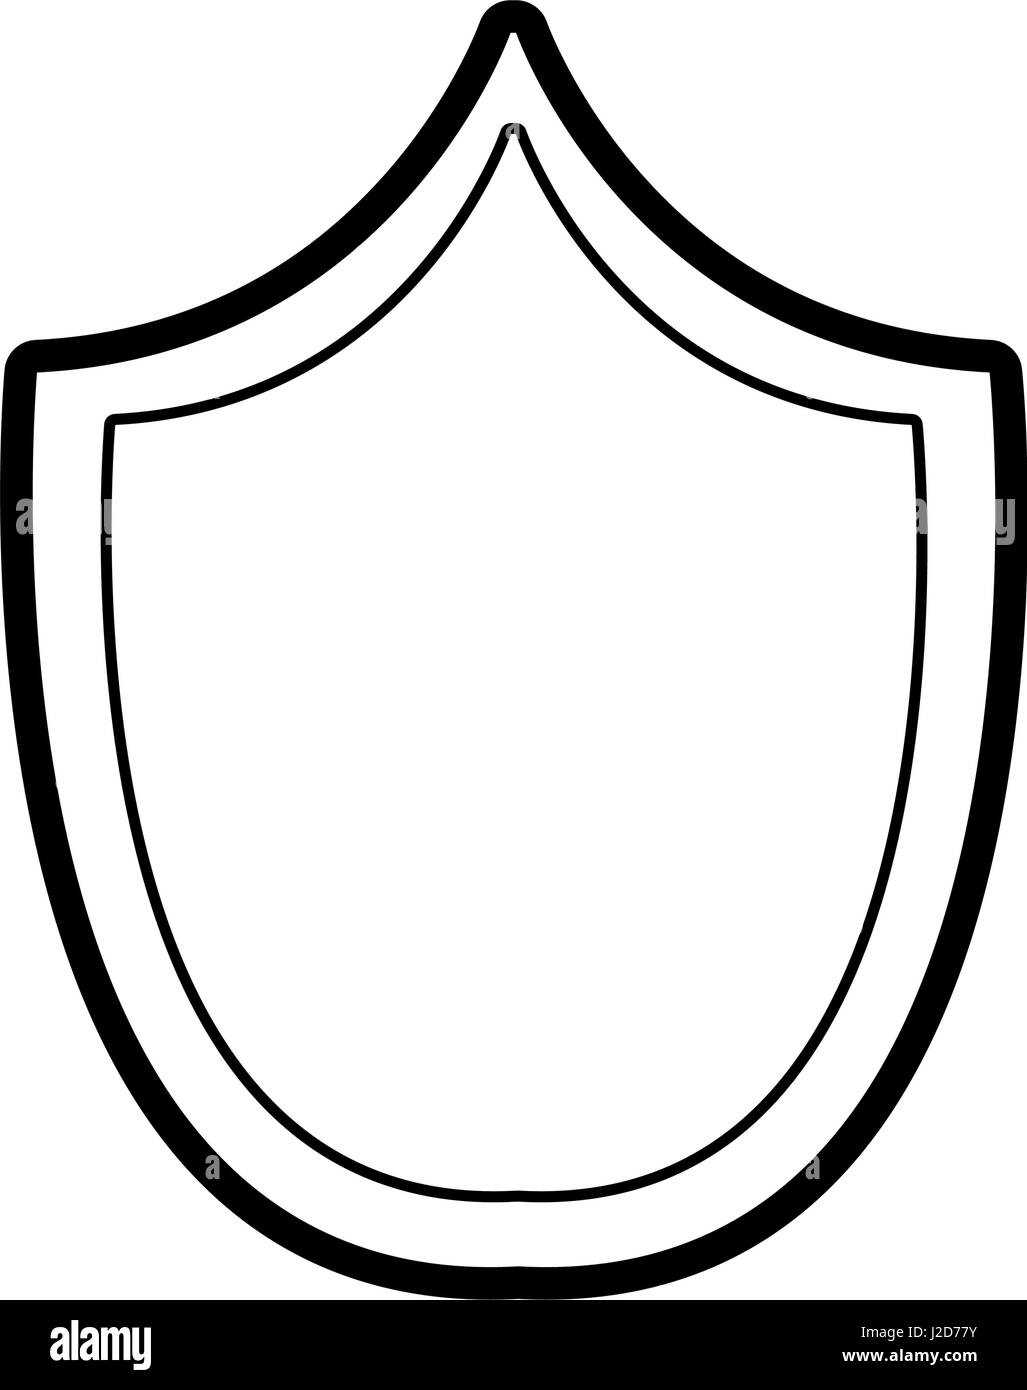 line security shield to protect things - Stock Image